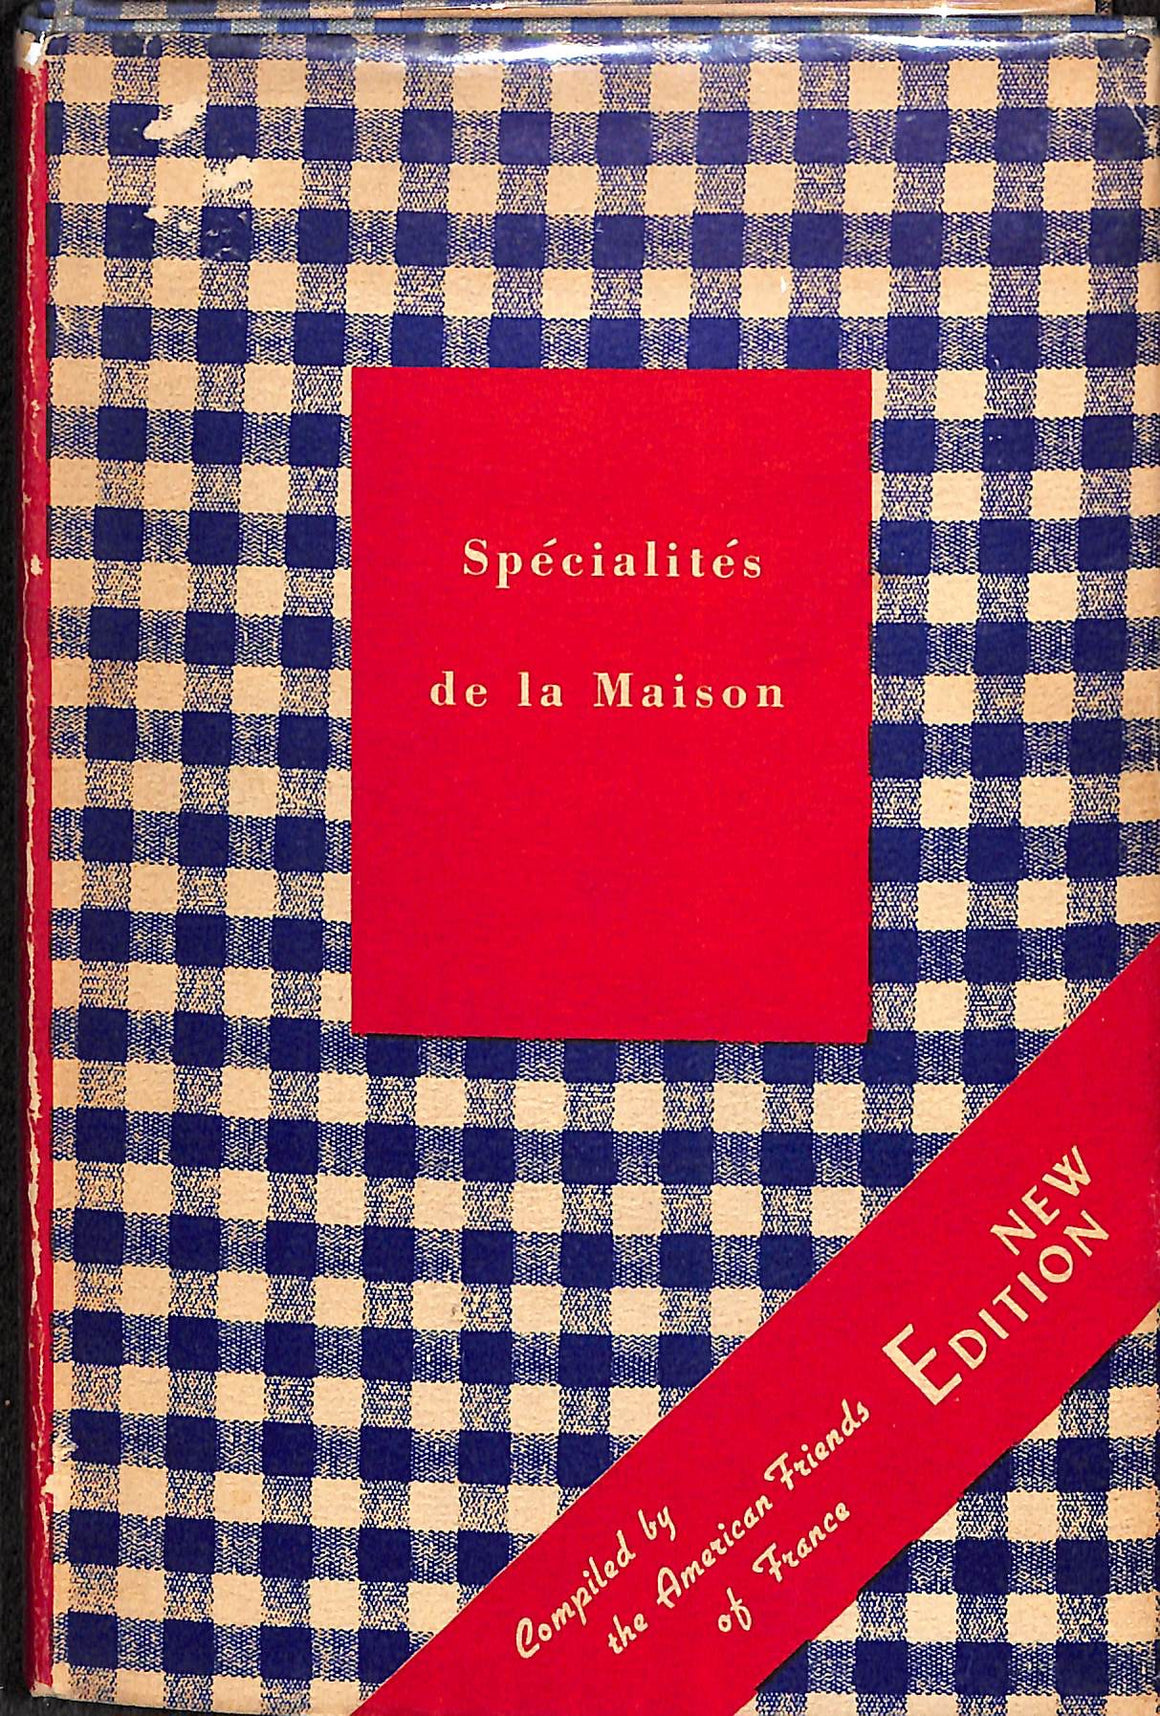 Specialites de la Maison by The American Friends of France